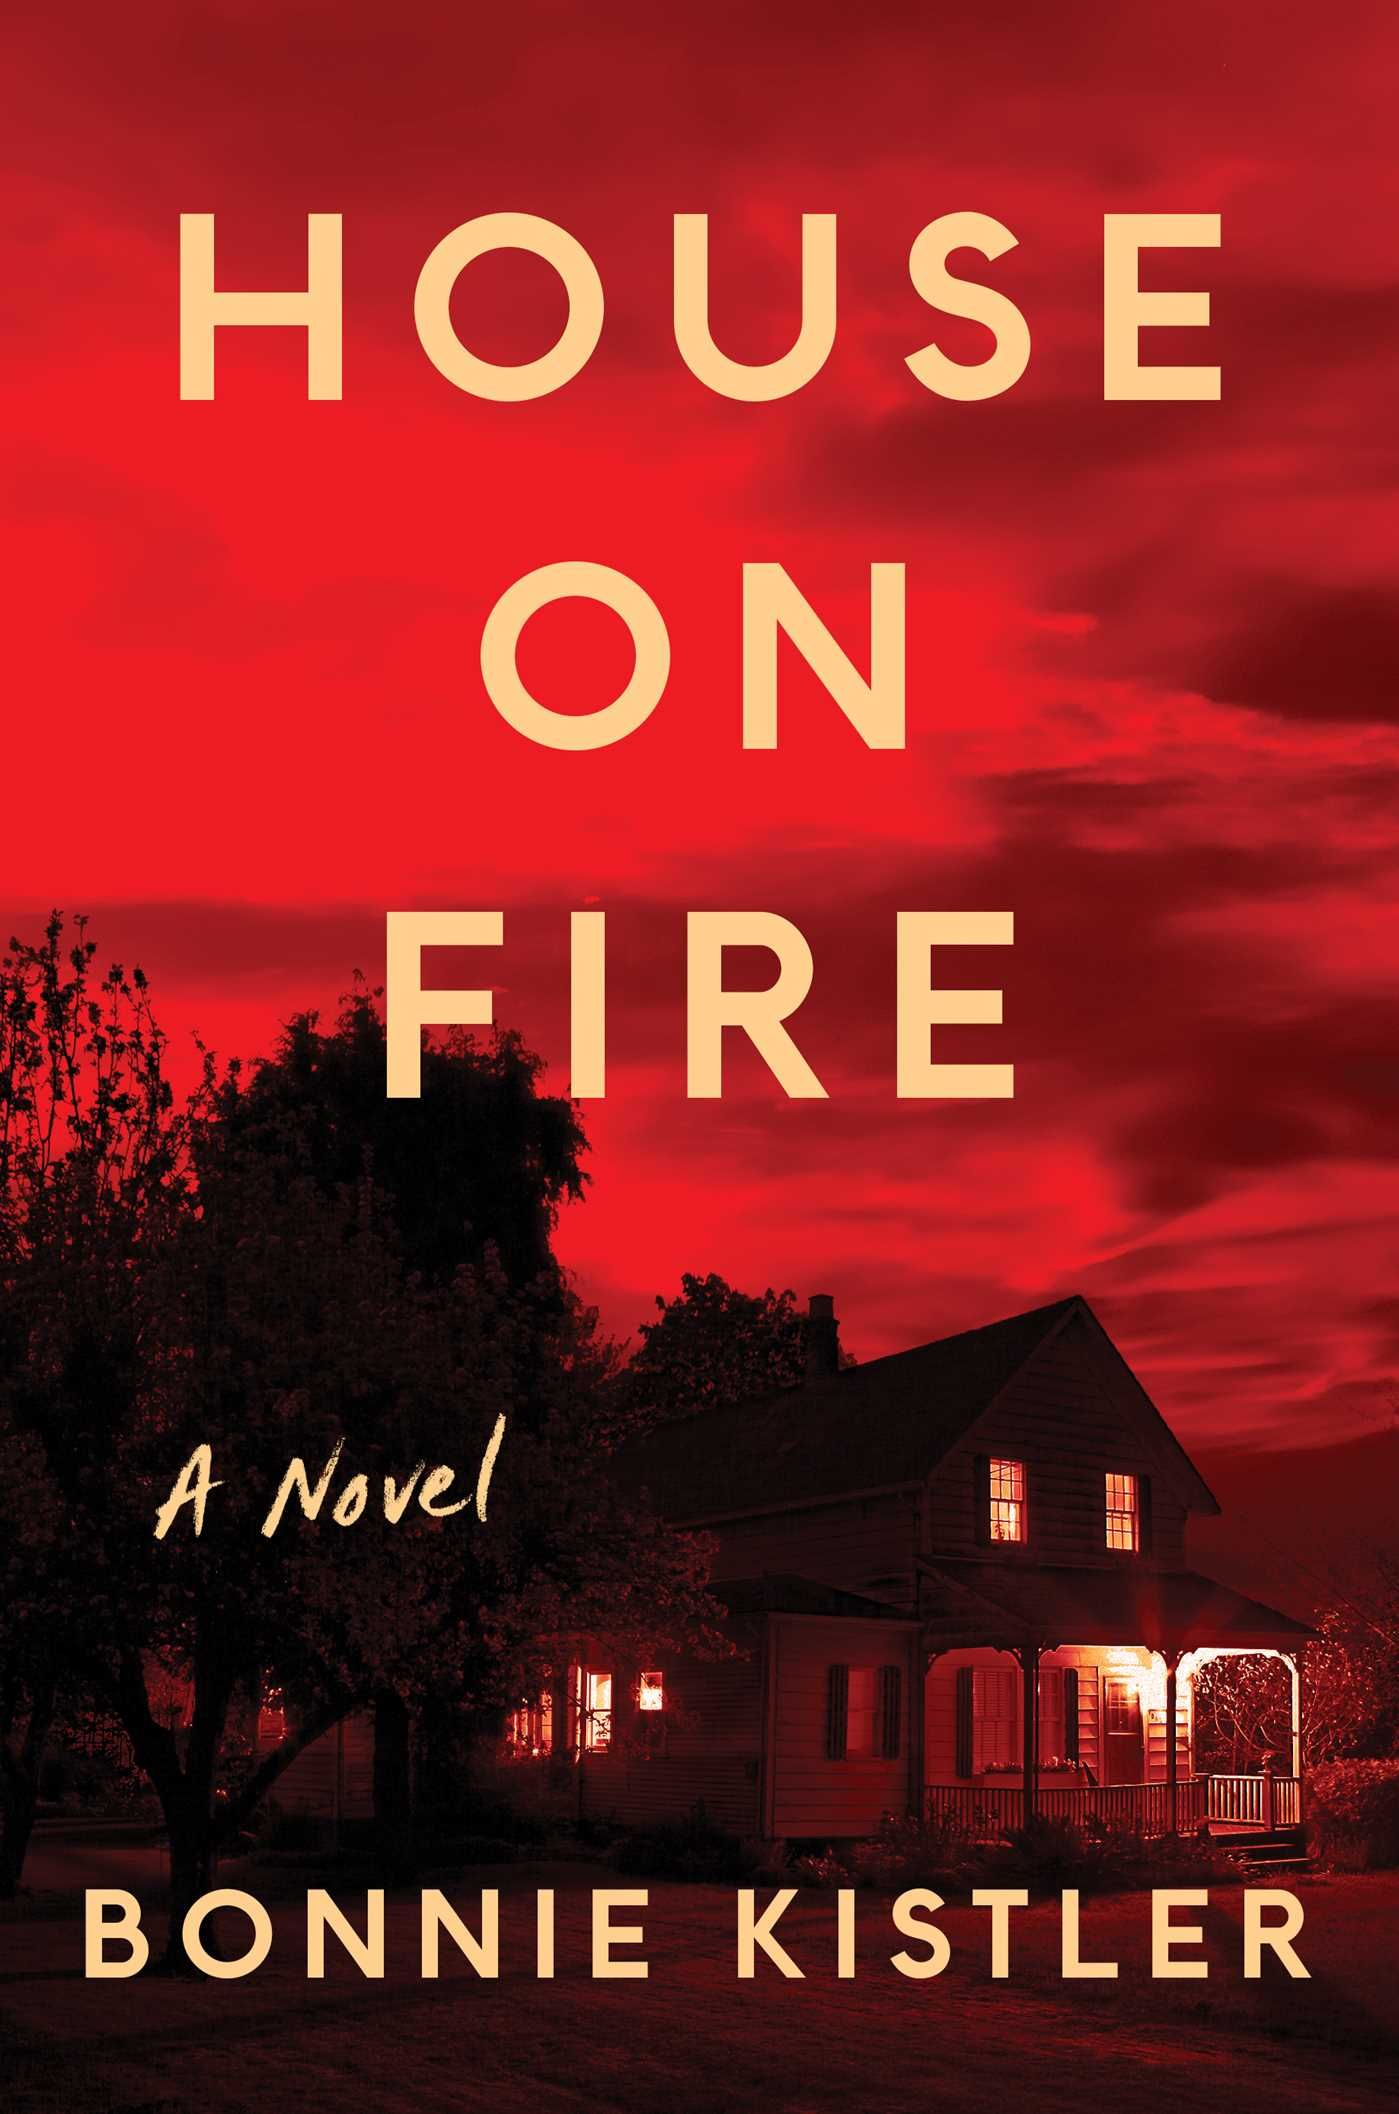 house on fire by bonnie kistler - Divorce lawyer Leigh Huyett knows all too well that most second marriages are doomed to fail. But five years in, she and Pete Conley have a perfectly blended family of her children and his. To celebrate their anniversary, they grab some precious moments of alone time and leave Pete's son Kip, a high school senior, in charge of Leigh's fourteen-year-old daughter Chrissy at their home.Driving back on a rainy Friday night, their cell phones start ringing. After a raucous party celebrating his college acceptance to Duke and his upcoming birthday, Kip was arrested for drunk driving after his truck crashed into a tree. And he wasn't alone—Chrissy was with him.Twelve hours later, Chrissy is dead and Kip is charged with manslaughter.Kip has always been a notorious troublemaker, but he's also a star student with a dazzling future ahead of him. At first, Leigh does her best to rally behind Pete and help Kip through his ordeal. Until he changes his story, and claims that he wasn't driving after all—Chrissy was, and he swears there is a witness.Leigh is stunned that he would lie about such a thing, while Pete clutches onto the story as the last, best hope to save his son, throwing his energy and money into finding this elusive witness. As they hurtle toward Kip's trial date, husband and wife are torn between loyalty to their children and to each other, while the mystery of what really happened that night intensifies.